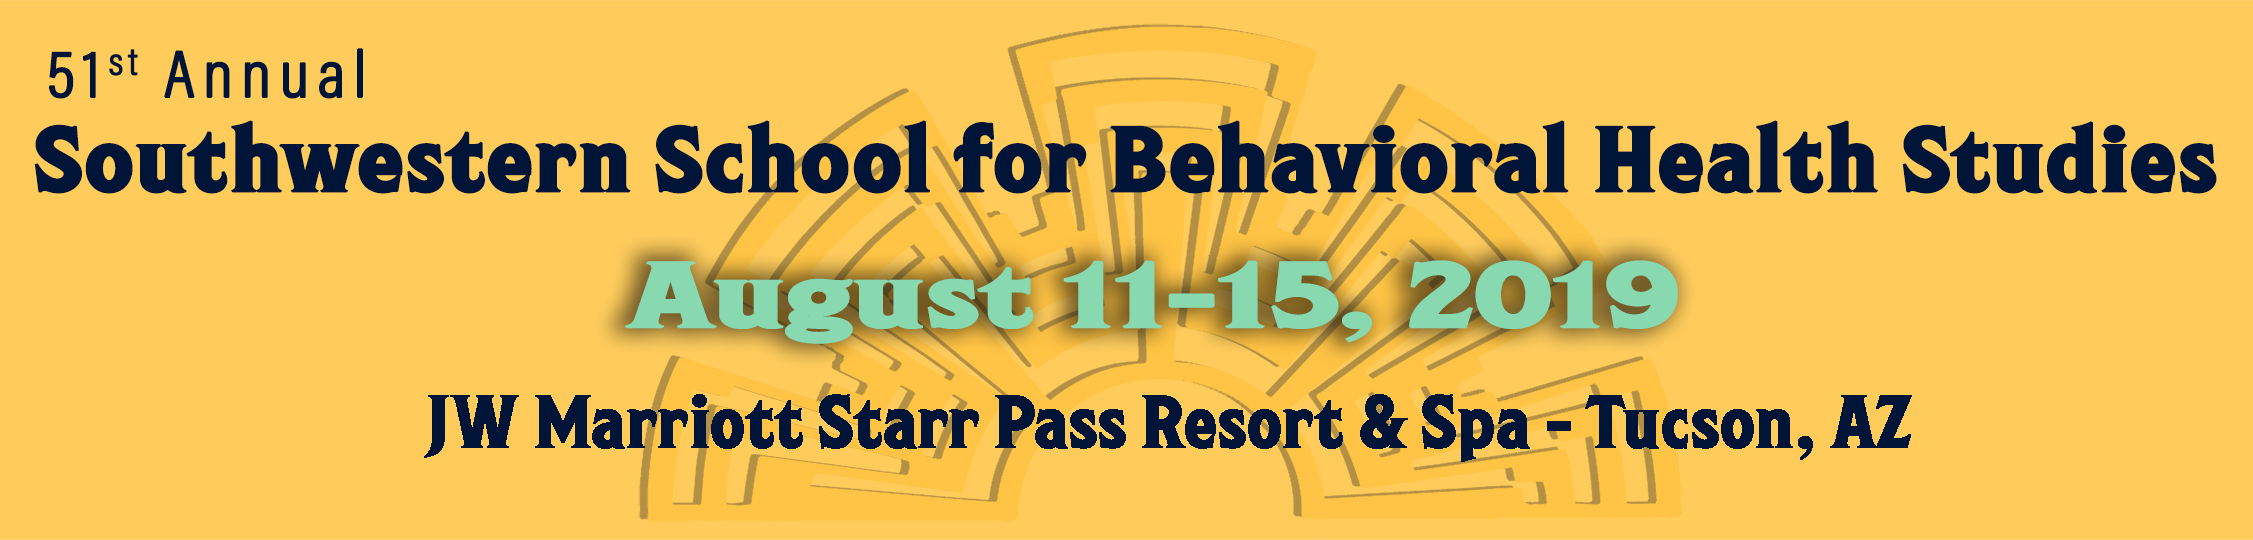 2019 SWS Conference - Attendee Information